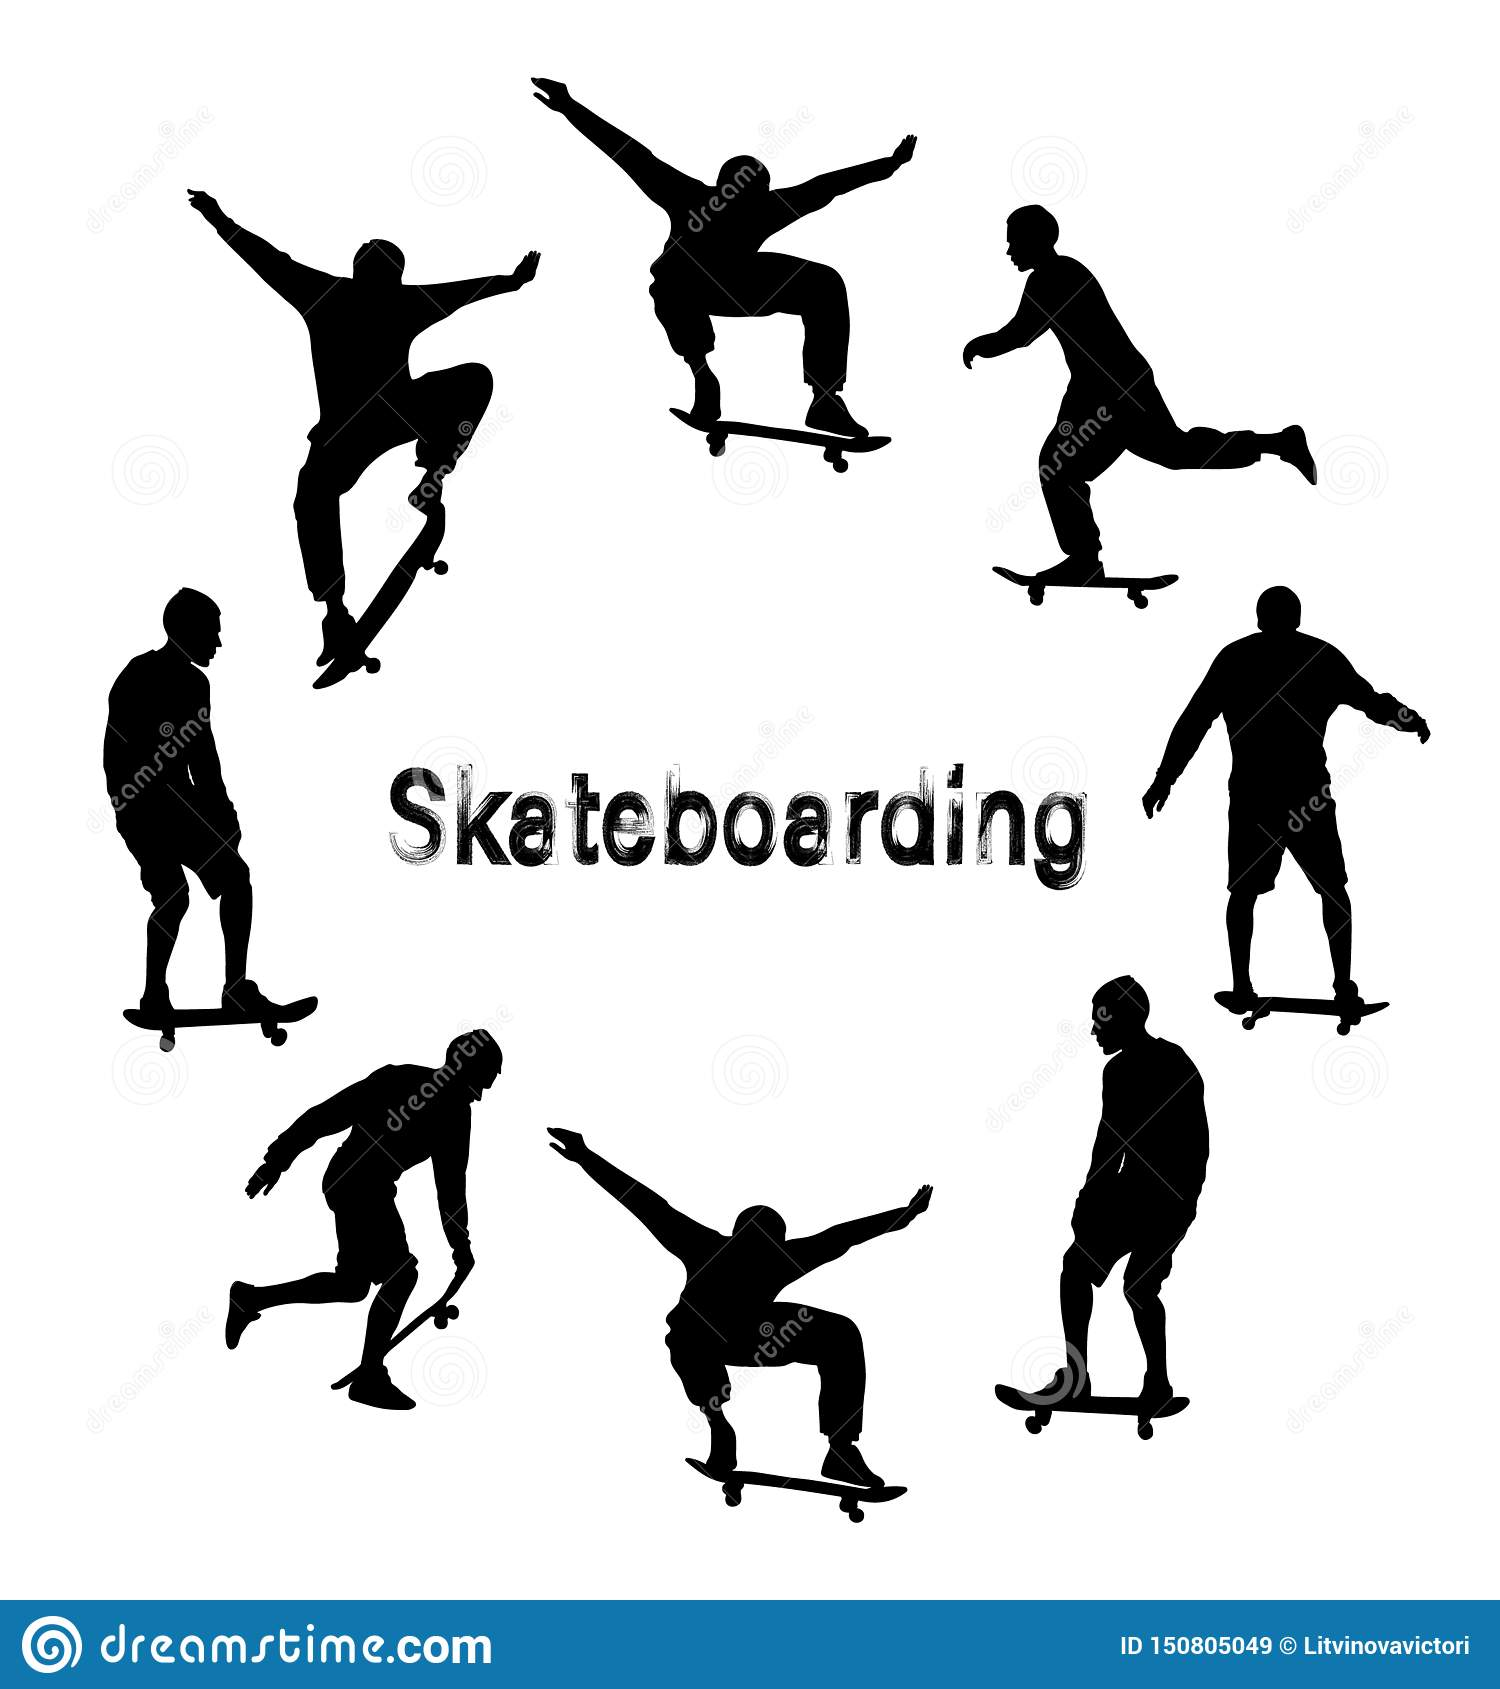 Set of black skateboarder silhouettes. Grunge style textured text